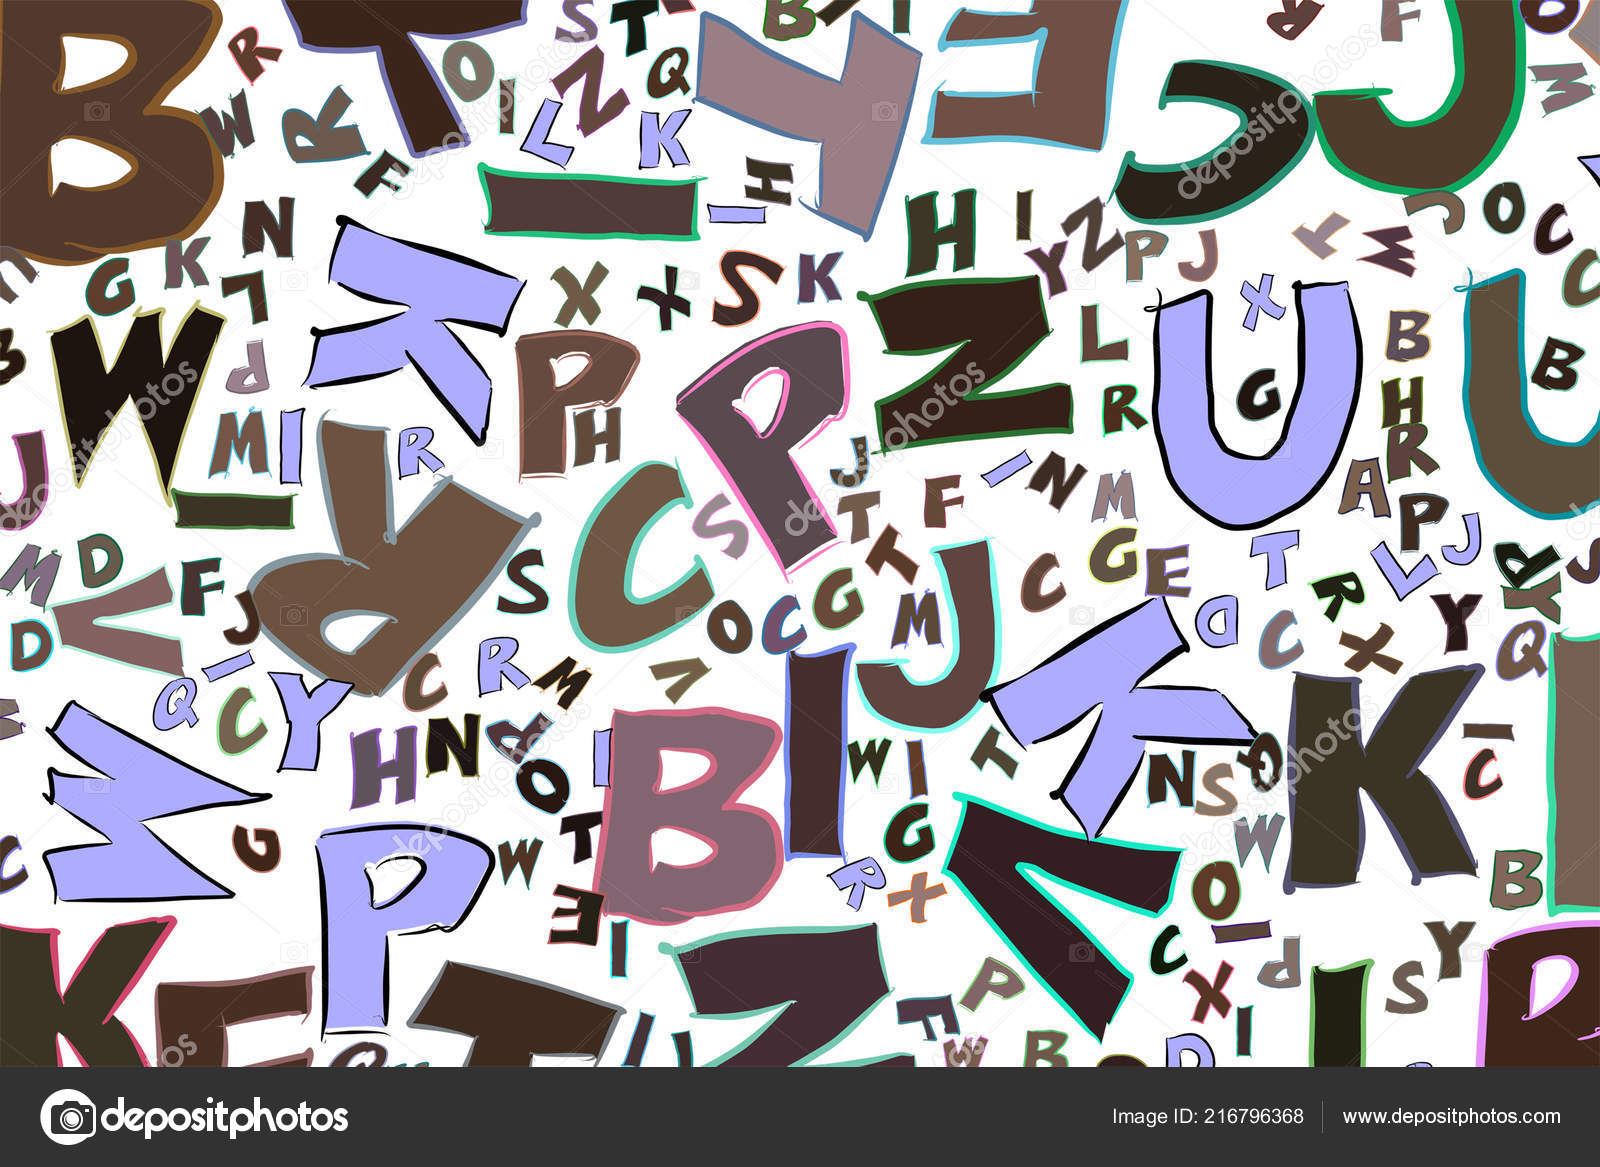 Illustrations Alphabets Letters Good Web Page Wallpaper